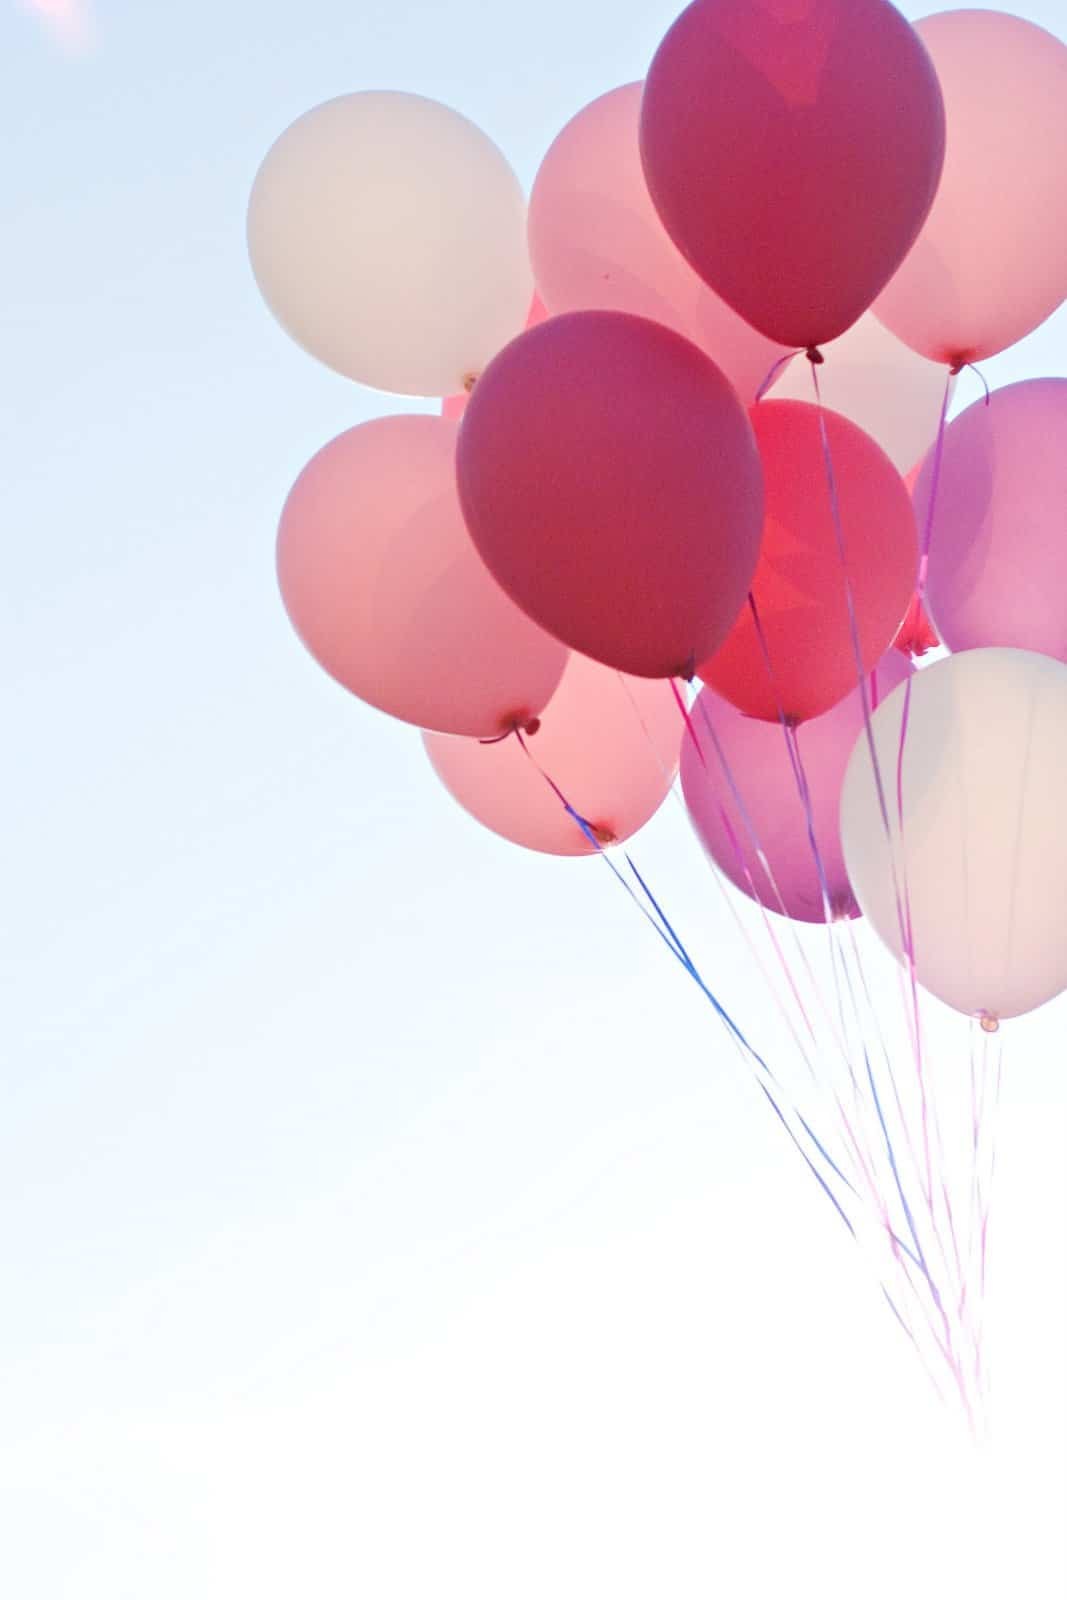 bouquet of pink balloons